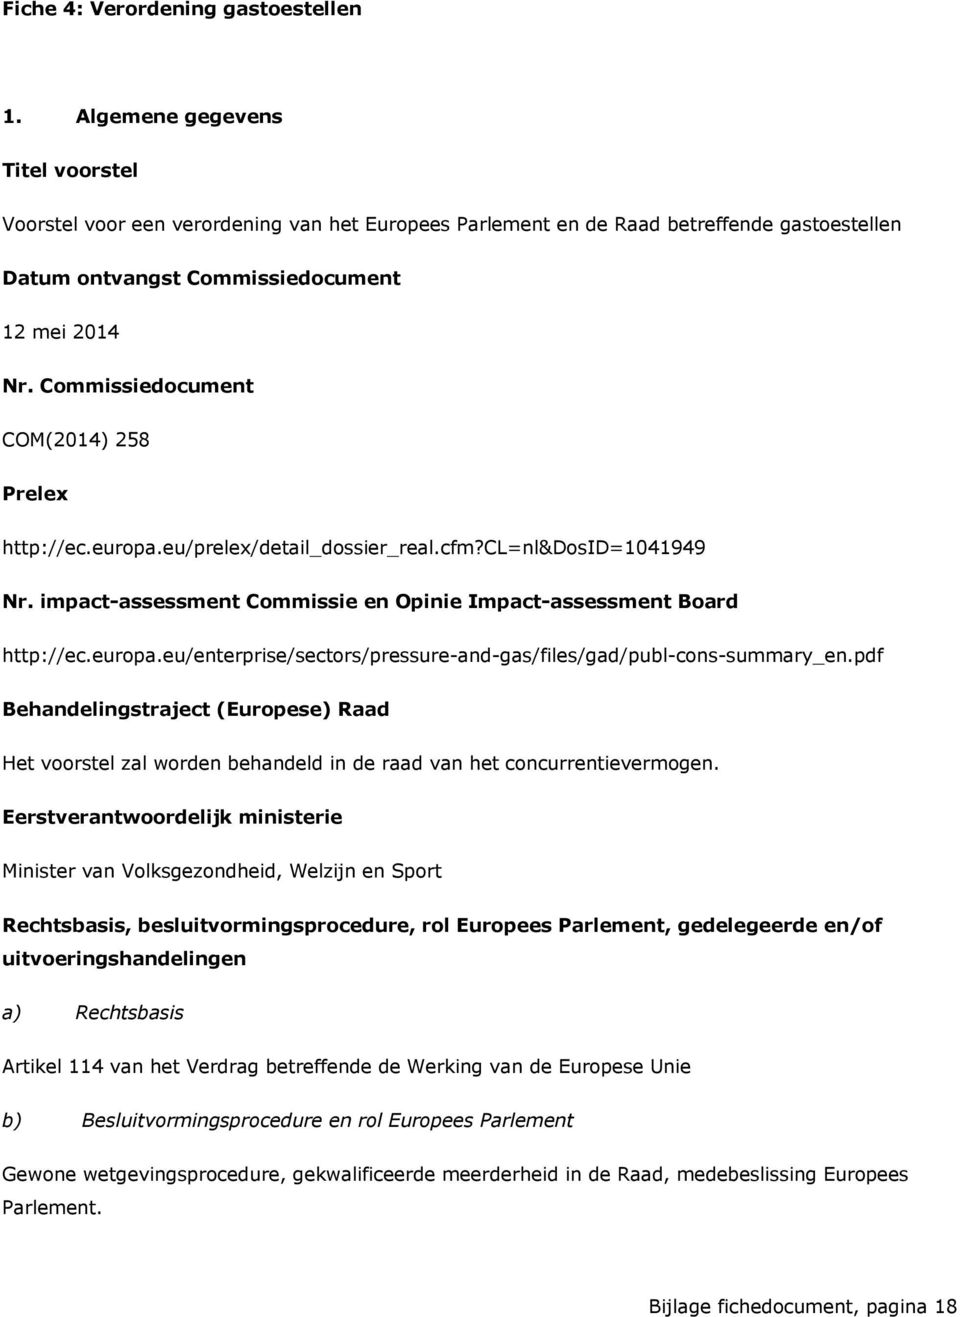 Commissiedocument COM(2014) 258 Prelex http://ec.europa.eu/prelex/detail_dossier_real.cfm?cl=nl&dosid=1041949 Nr. impact-assessment Commissie en Opinie Impact-assessment Board http://ec.europa.eu/enterprise/sectors/pressure-and-gas/files/gad/publ-cons-summary_en.